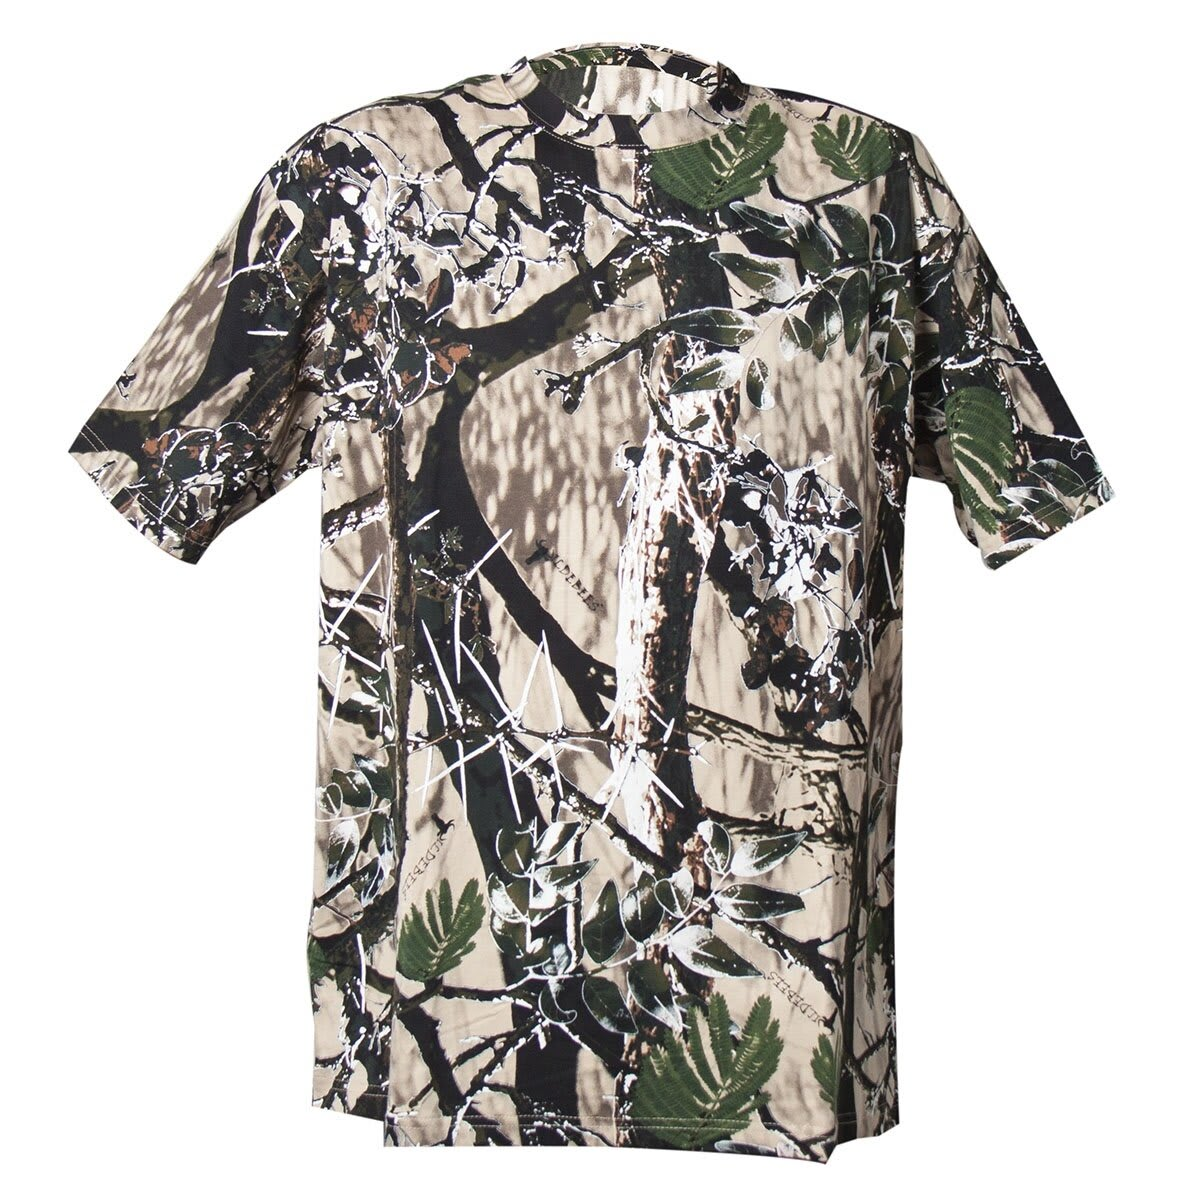 Wildebees Men's Short Sleeve Camo Tee